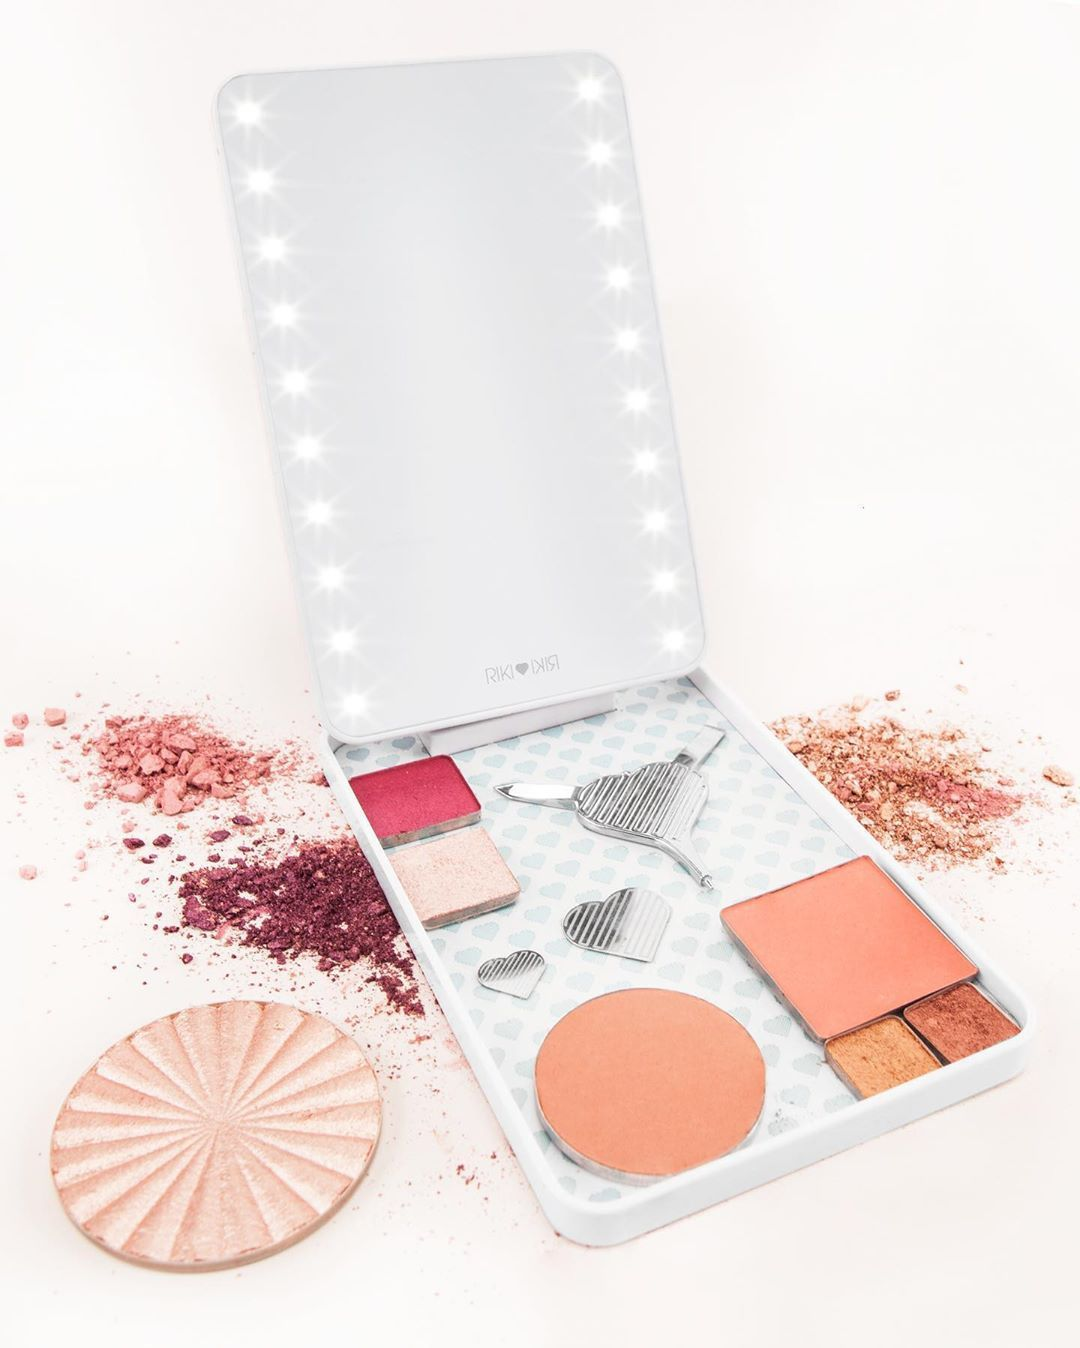 Riki colorful makeup palette, Makeup mirror